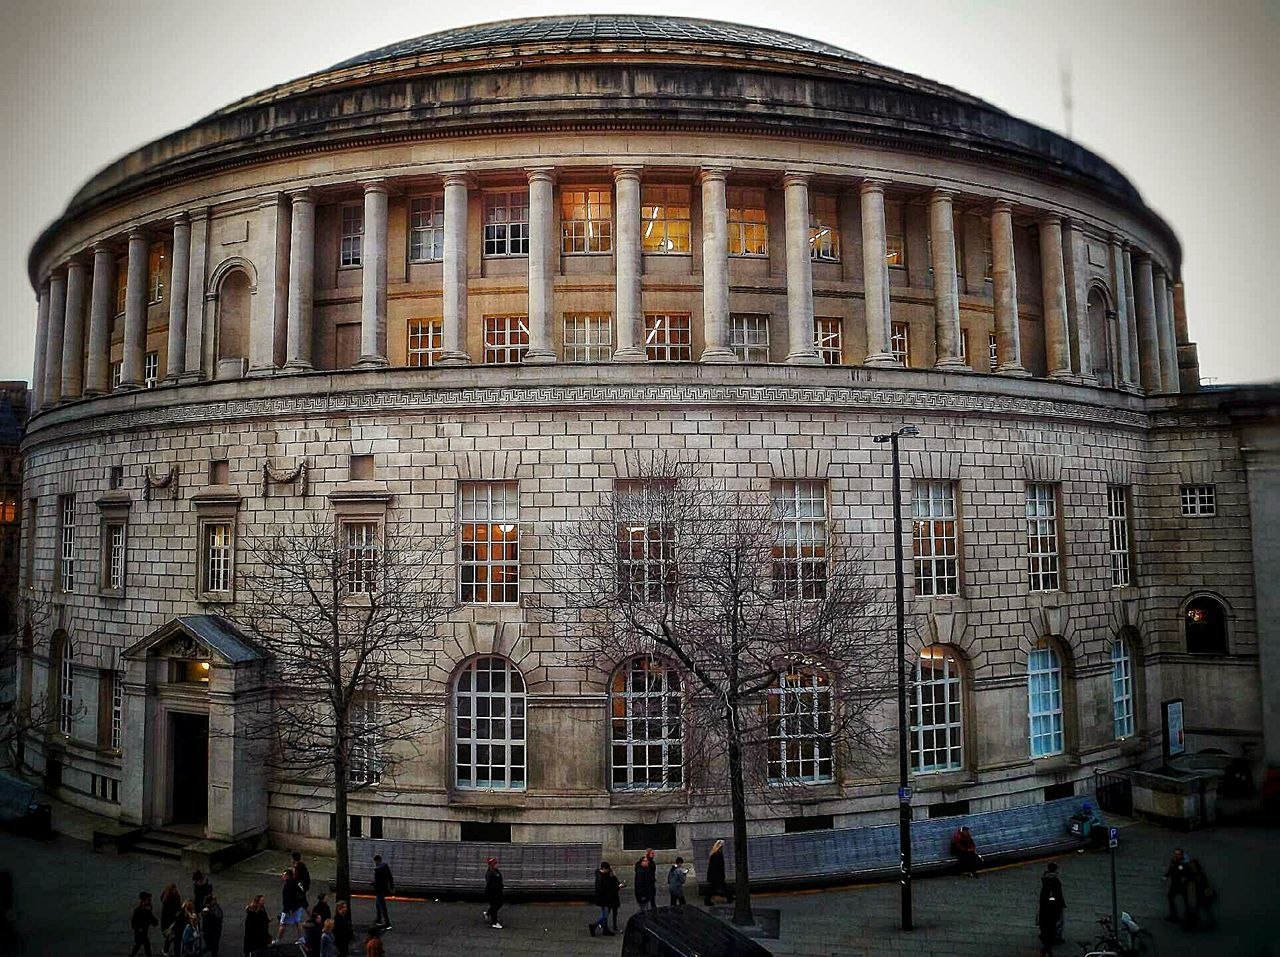 Architecture Arts Culture And Entertainment Building Exterior Manchester Central Library Walking Around Library Library Building Manchester Architecture Ladyphotographerofthemonth Built Structure